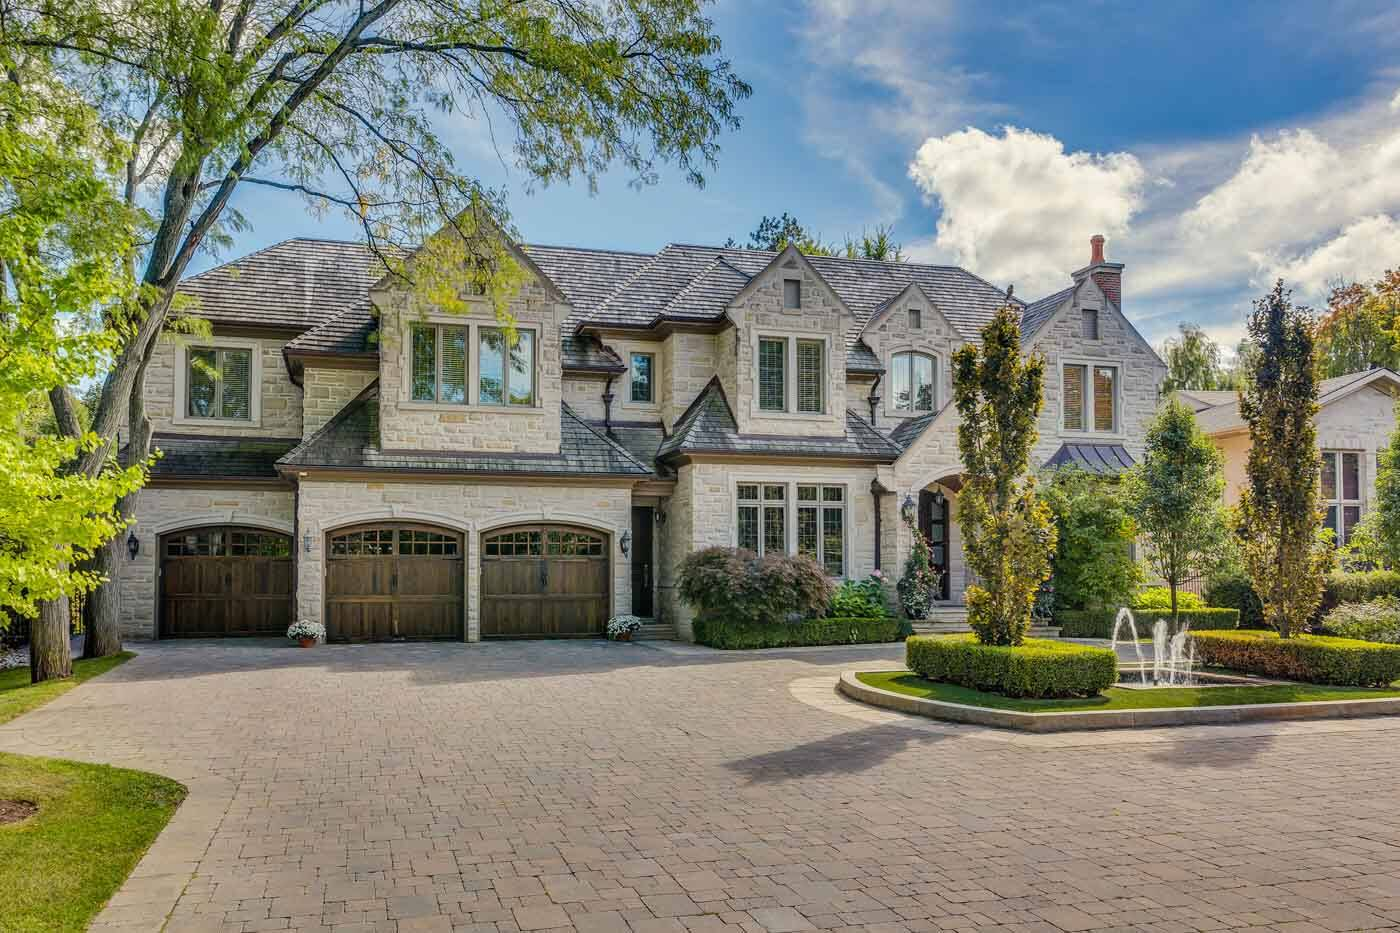 Windsor Cottage The 5 Most Expensive Houses For Sale In